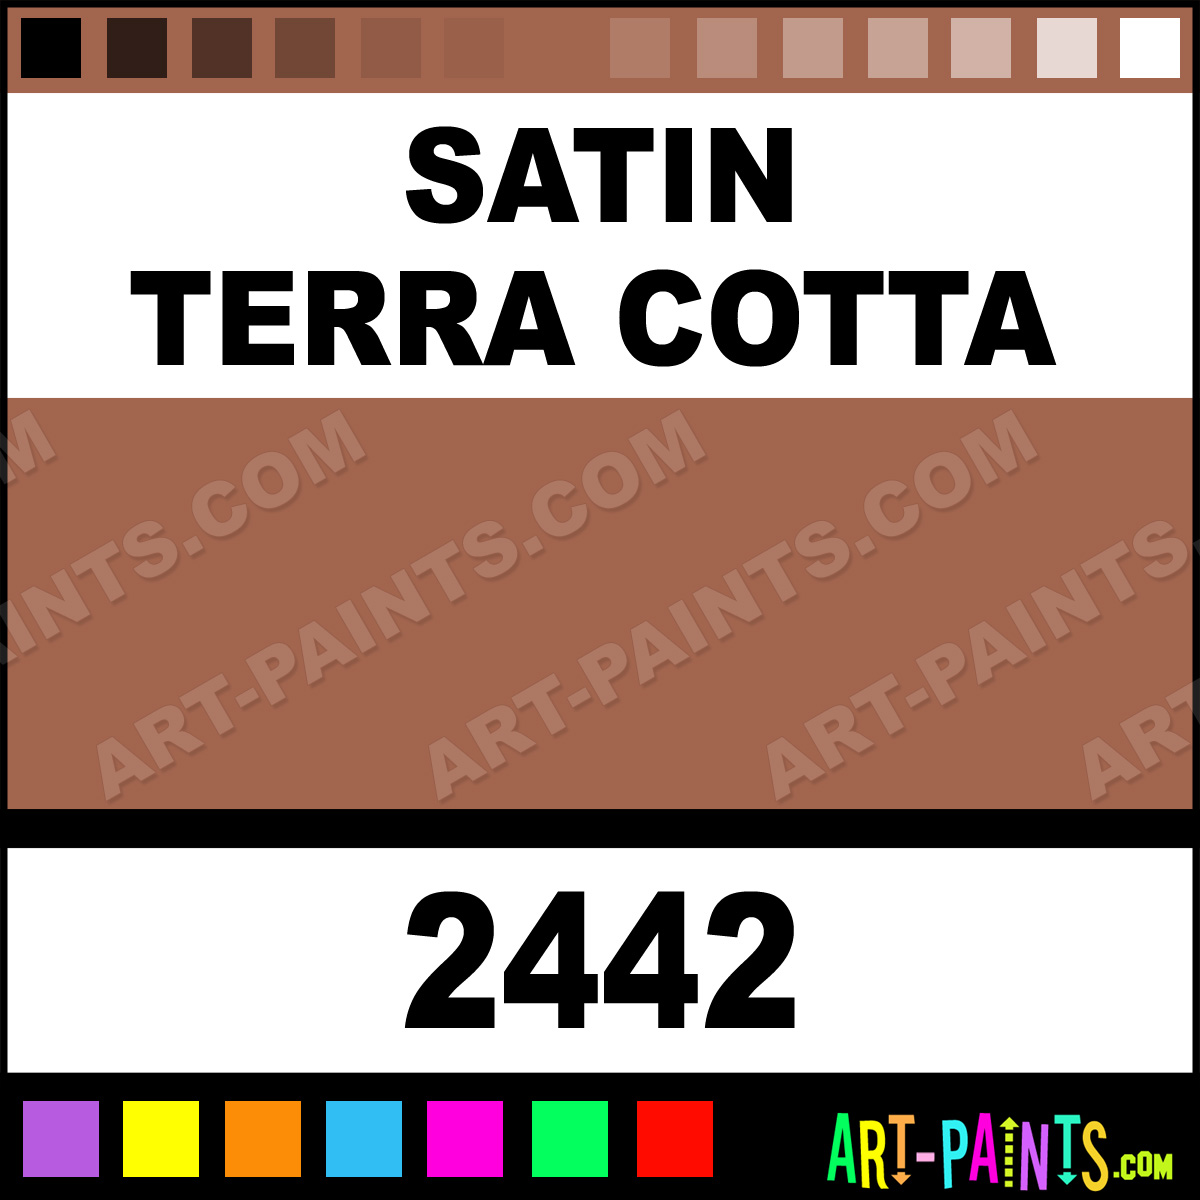 satin terra cotta fusion for plastic spray paints 2442. Black Bedroom Furniture Sets. Home Design Ideas